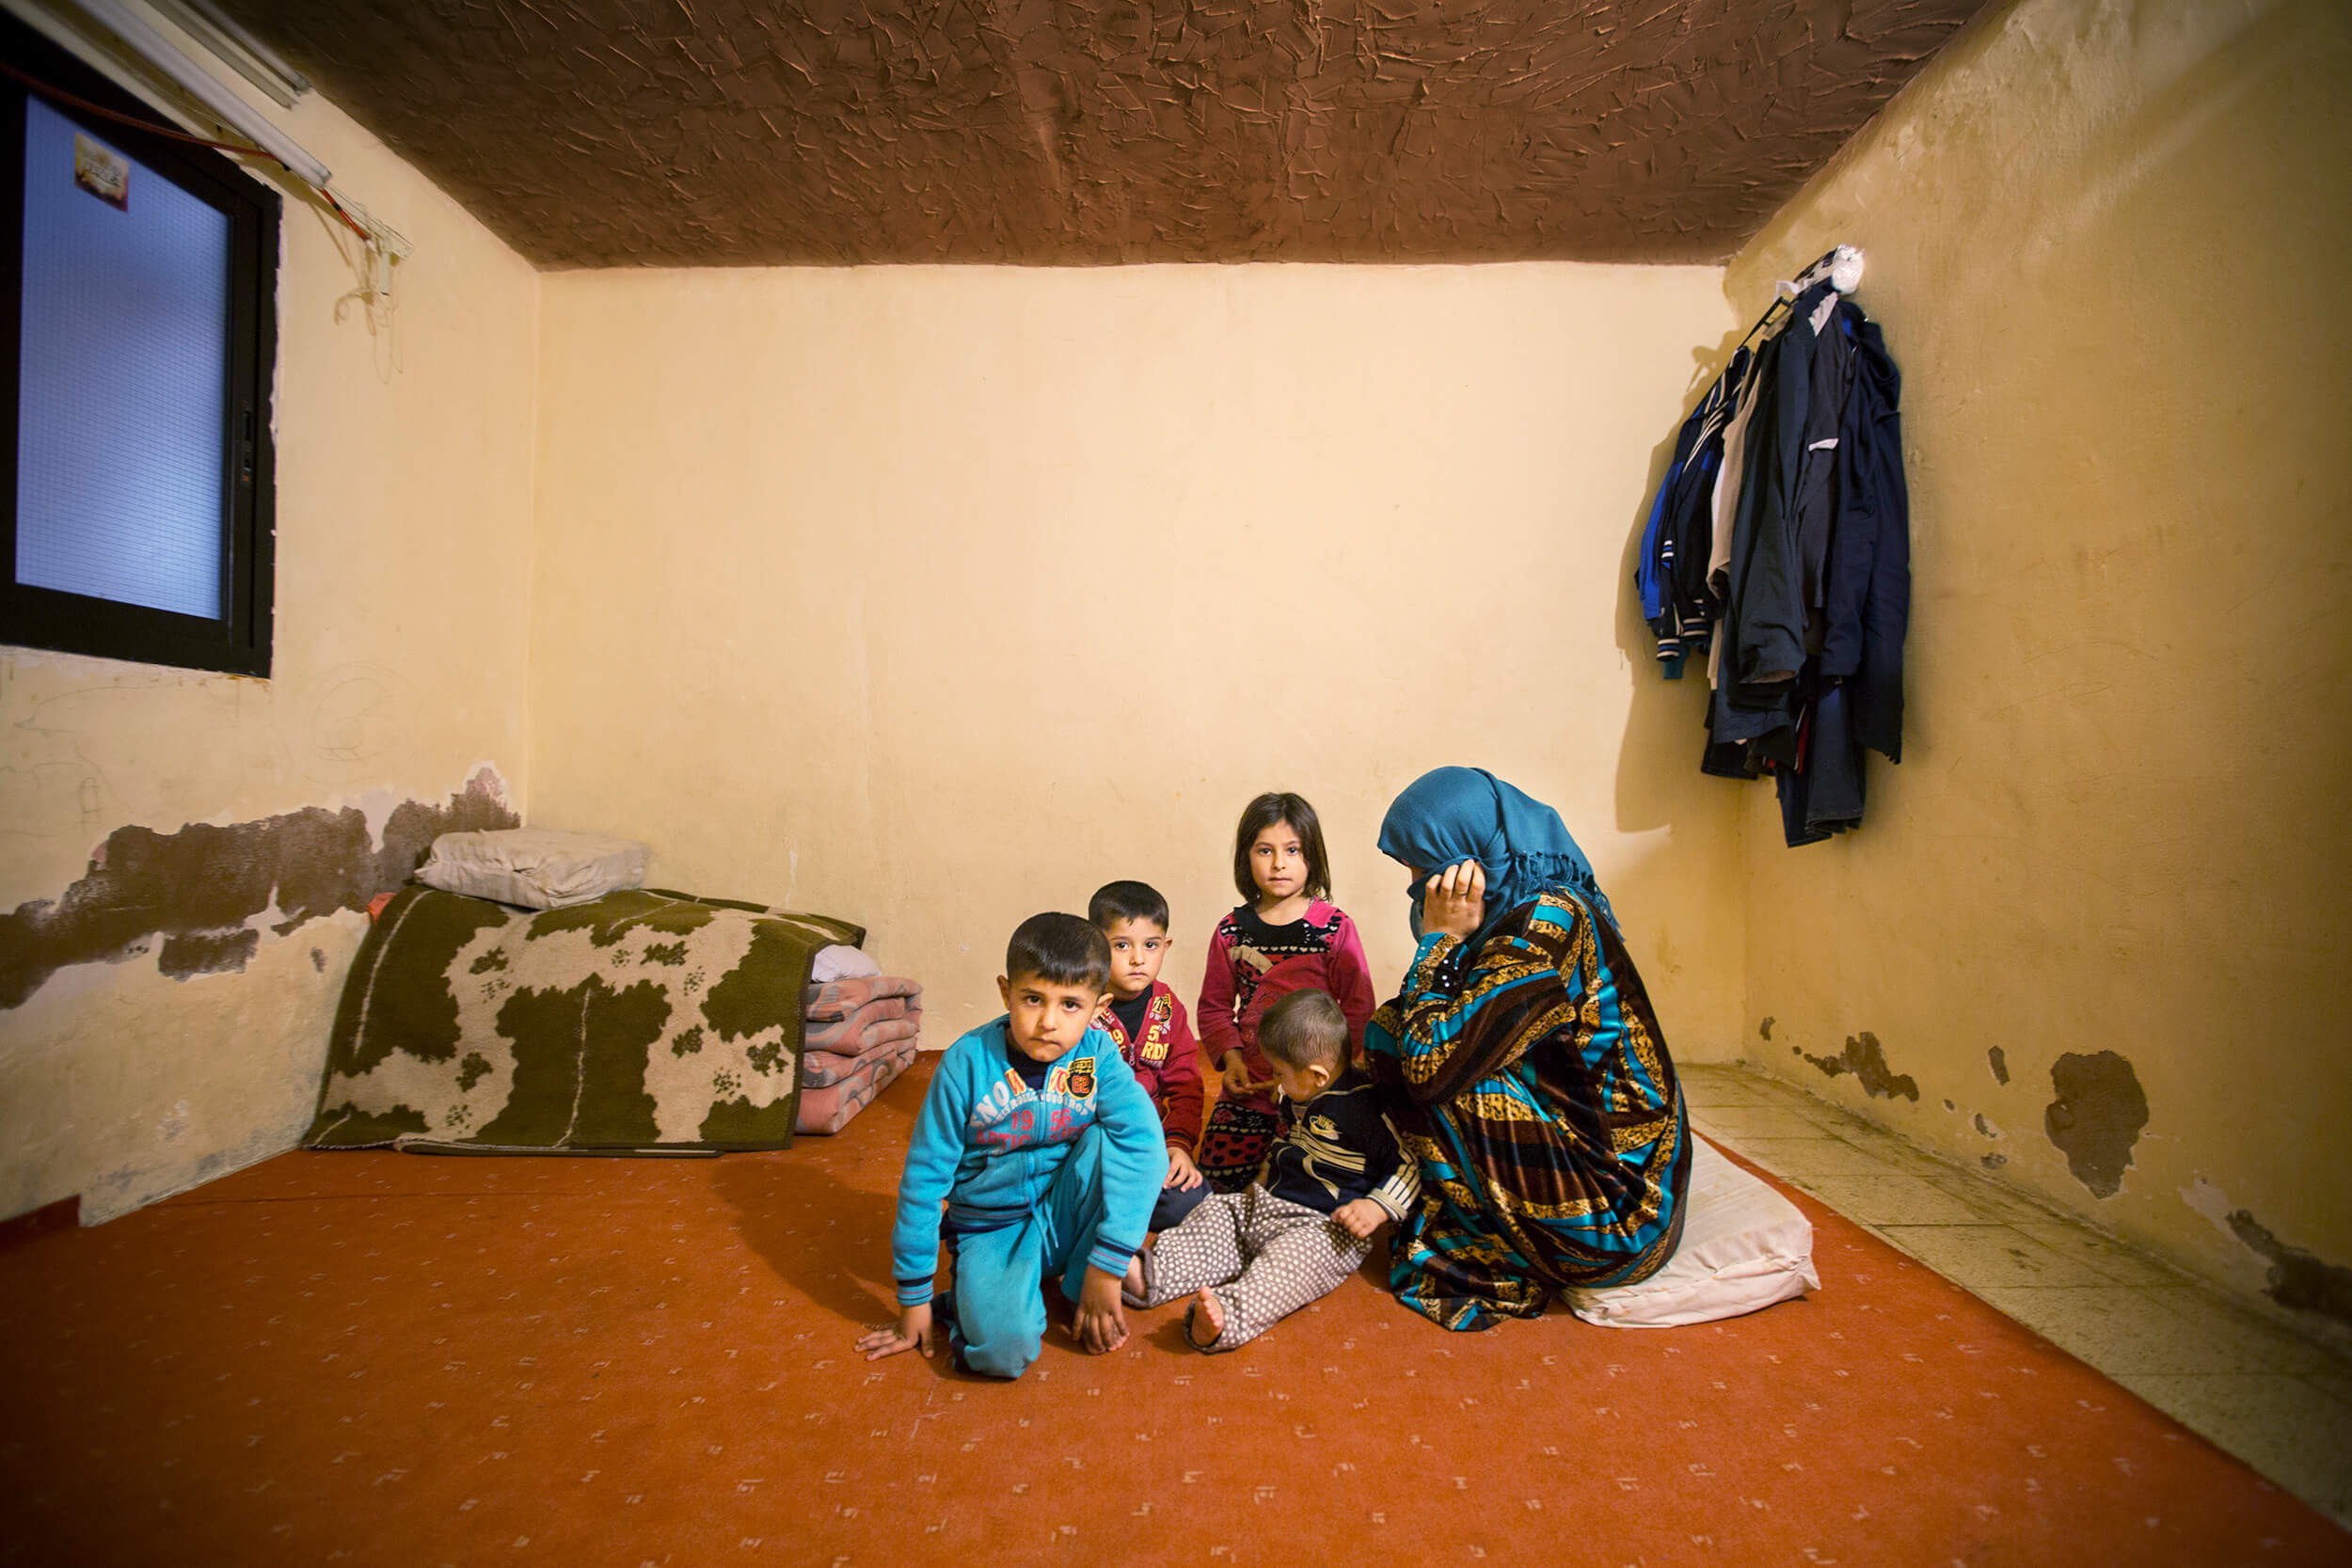 The refugee camp MAR ELIAS in Beirut in 2016. The family fled from Aleppo in Syria.